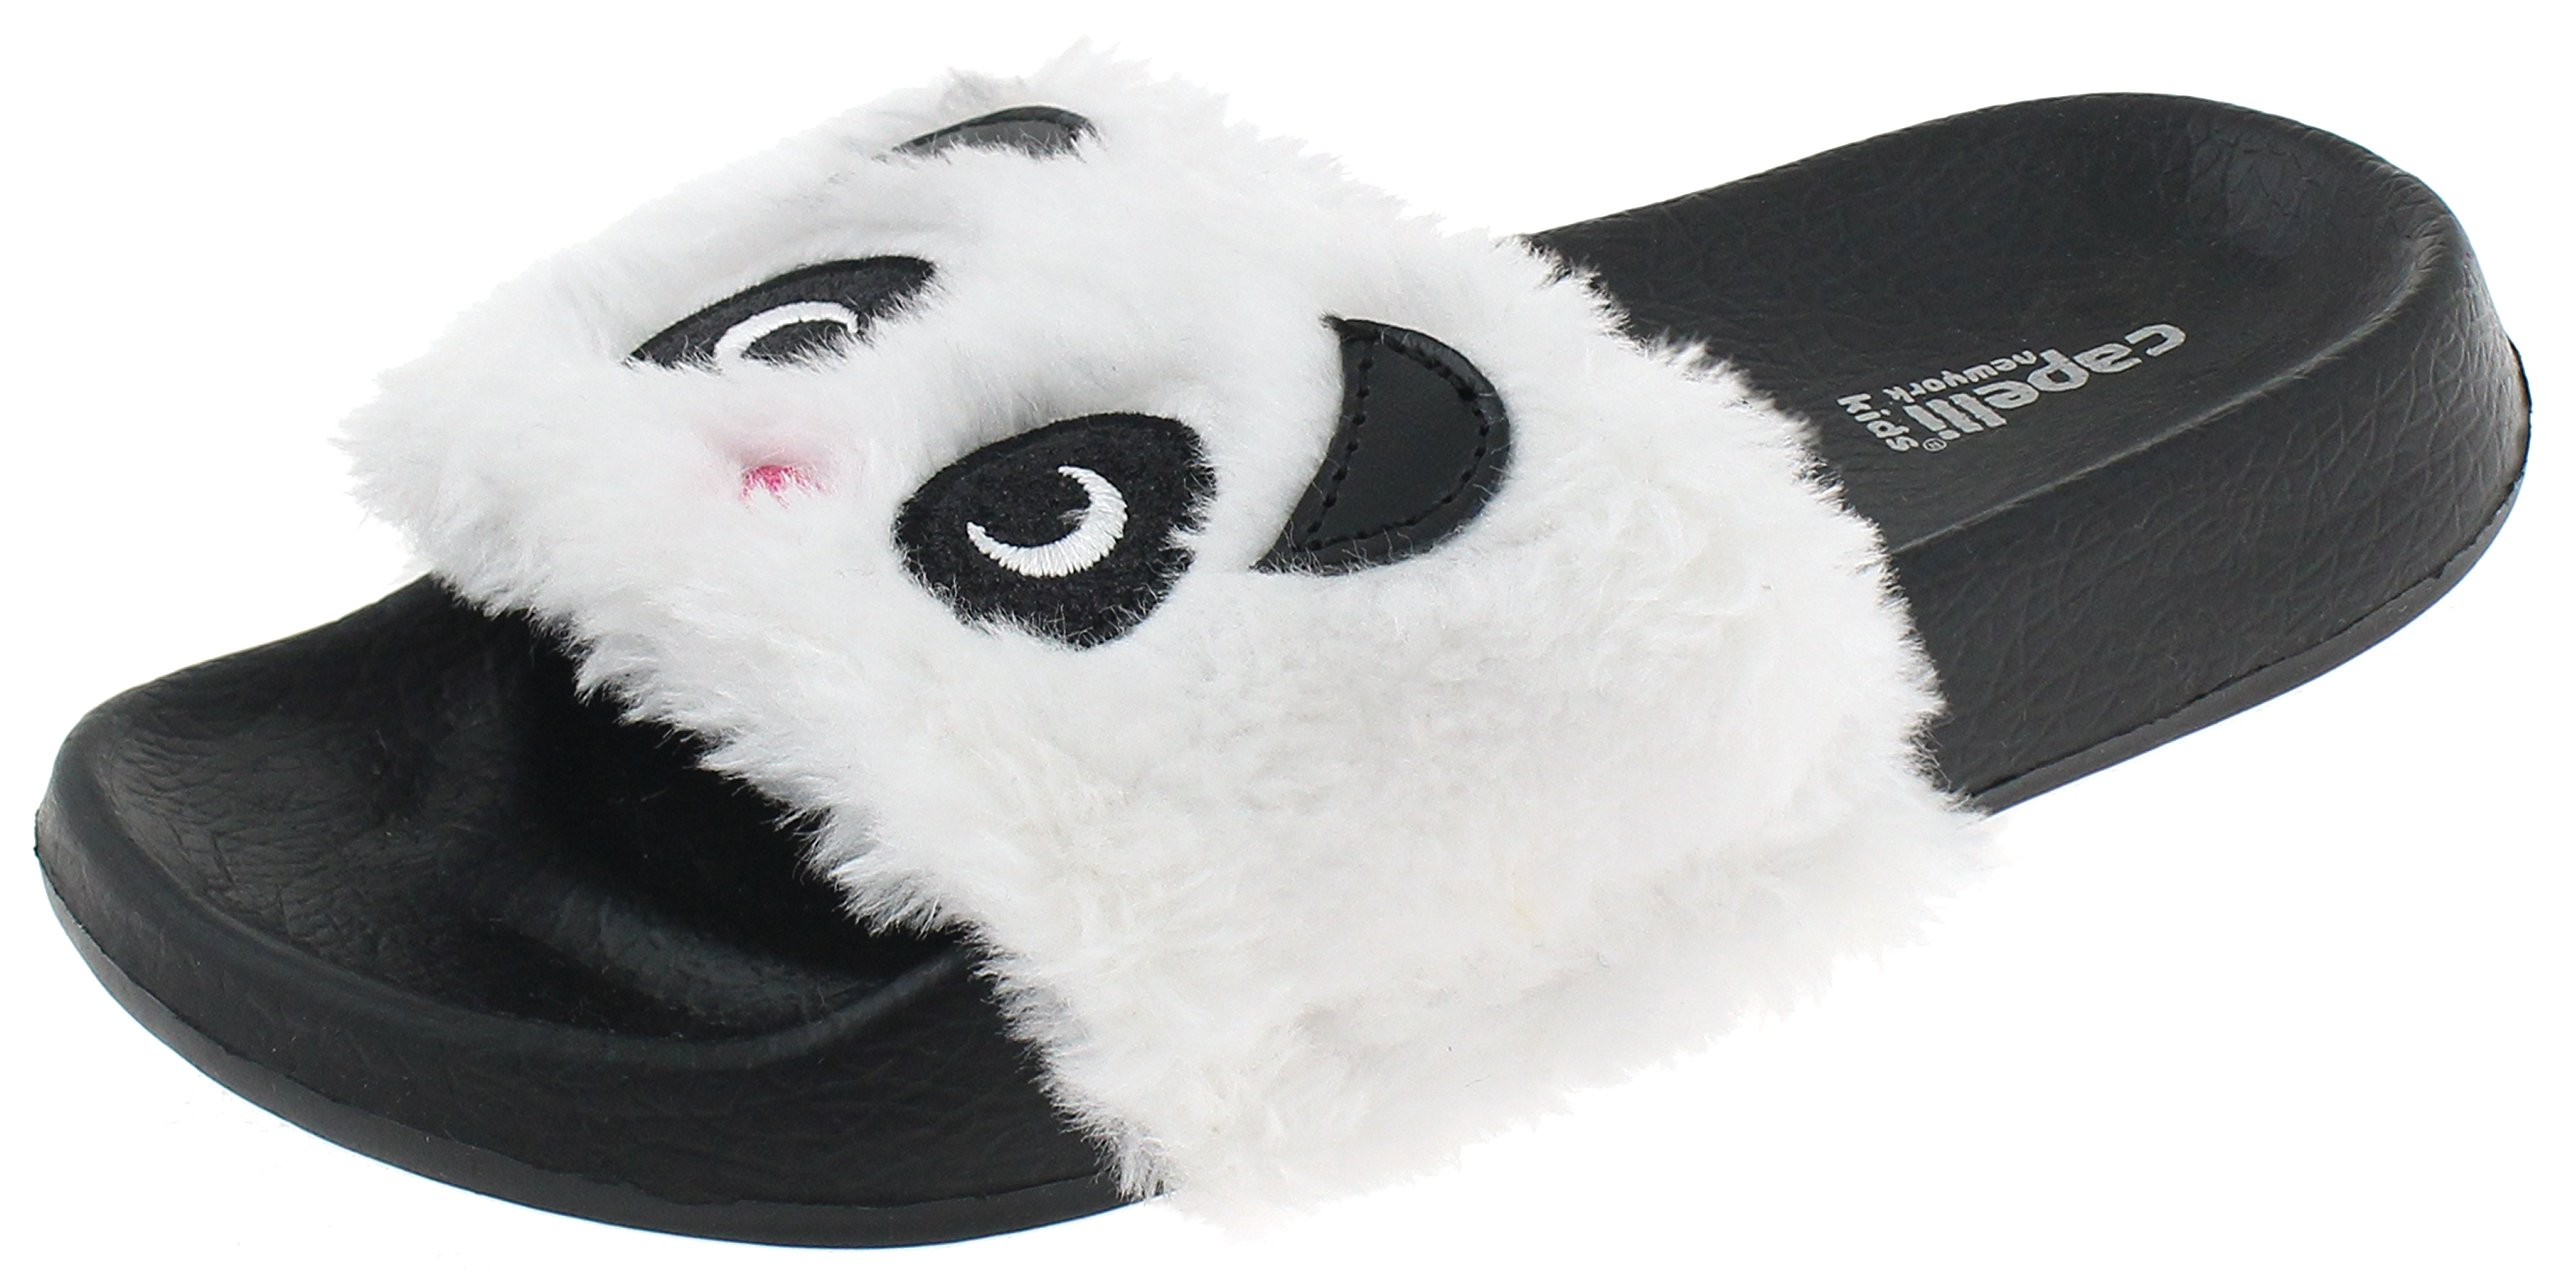 Capelli New York Girls Faux Fur Panda Fashion Slide Black Combo 10/11